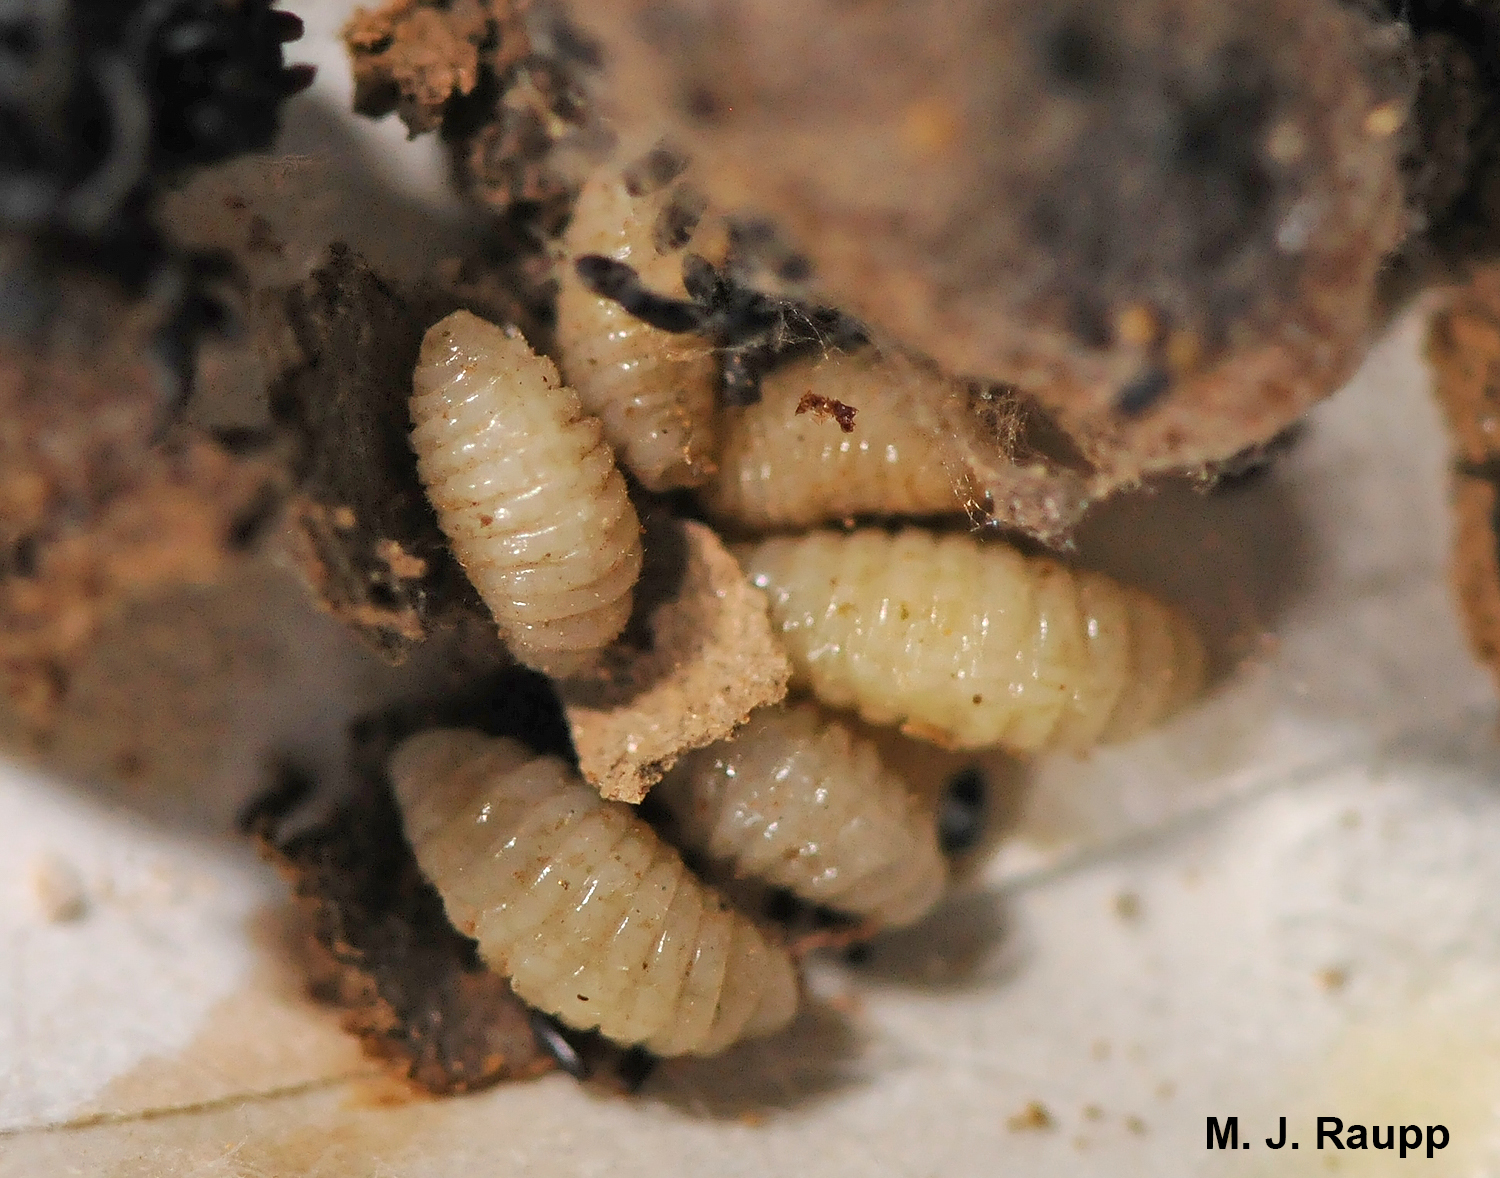 Parasites of an unknown species brought an end to these mason bee babies.